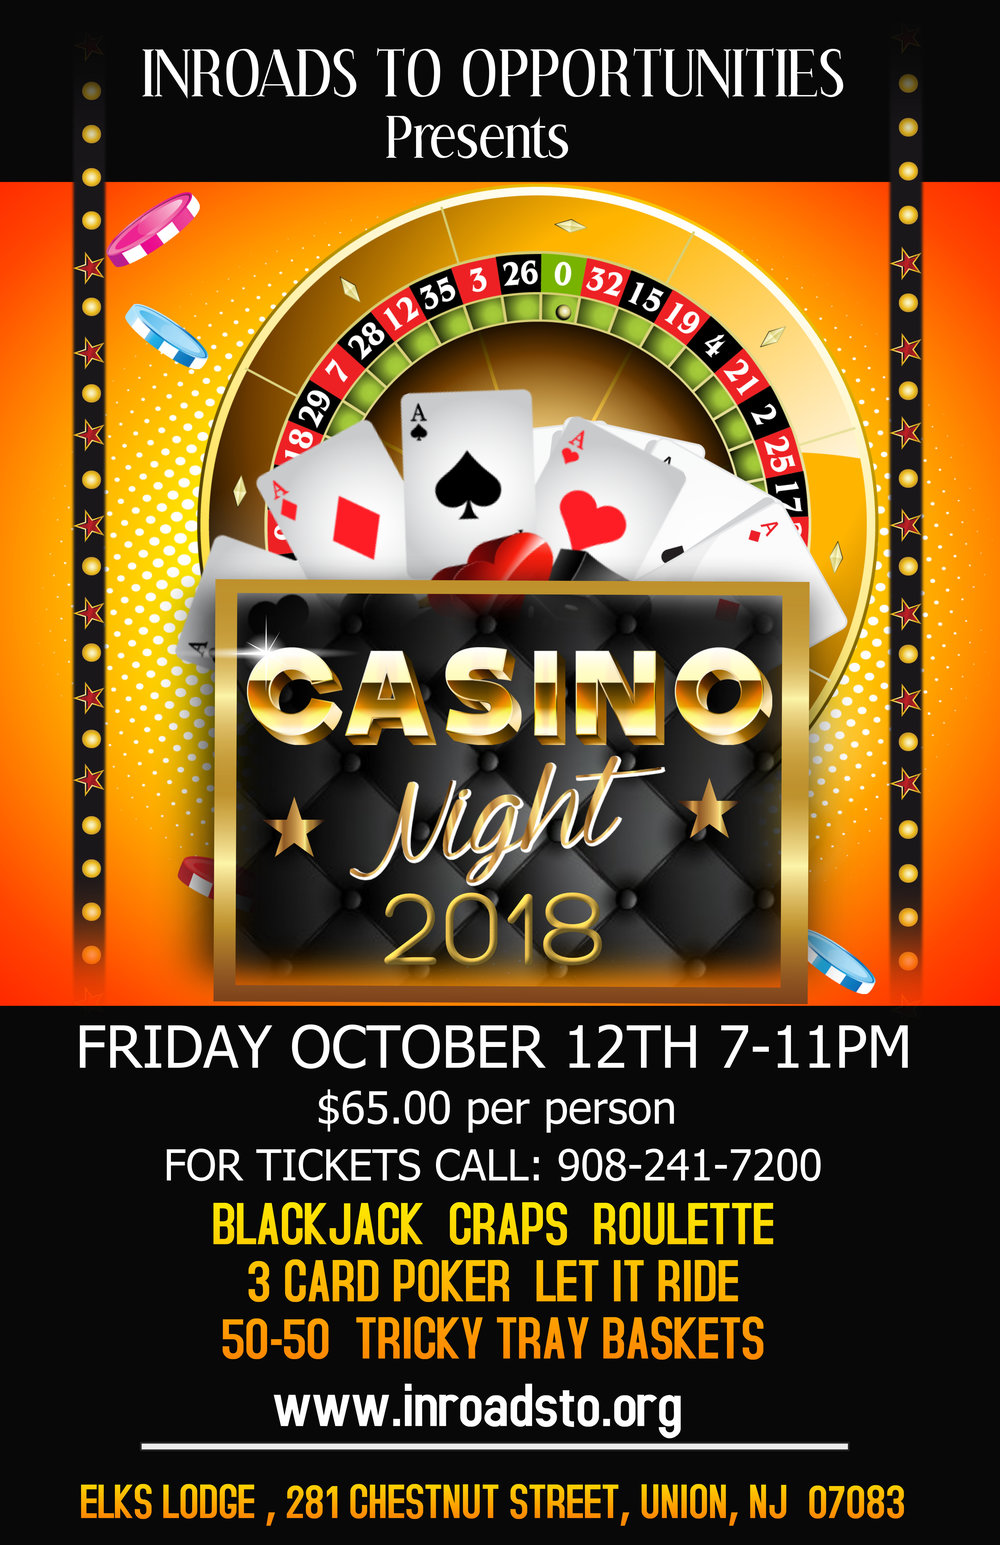 INROADS CASINO NIGHT POSTER 11X17.jpg